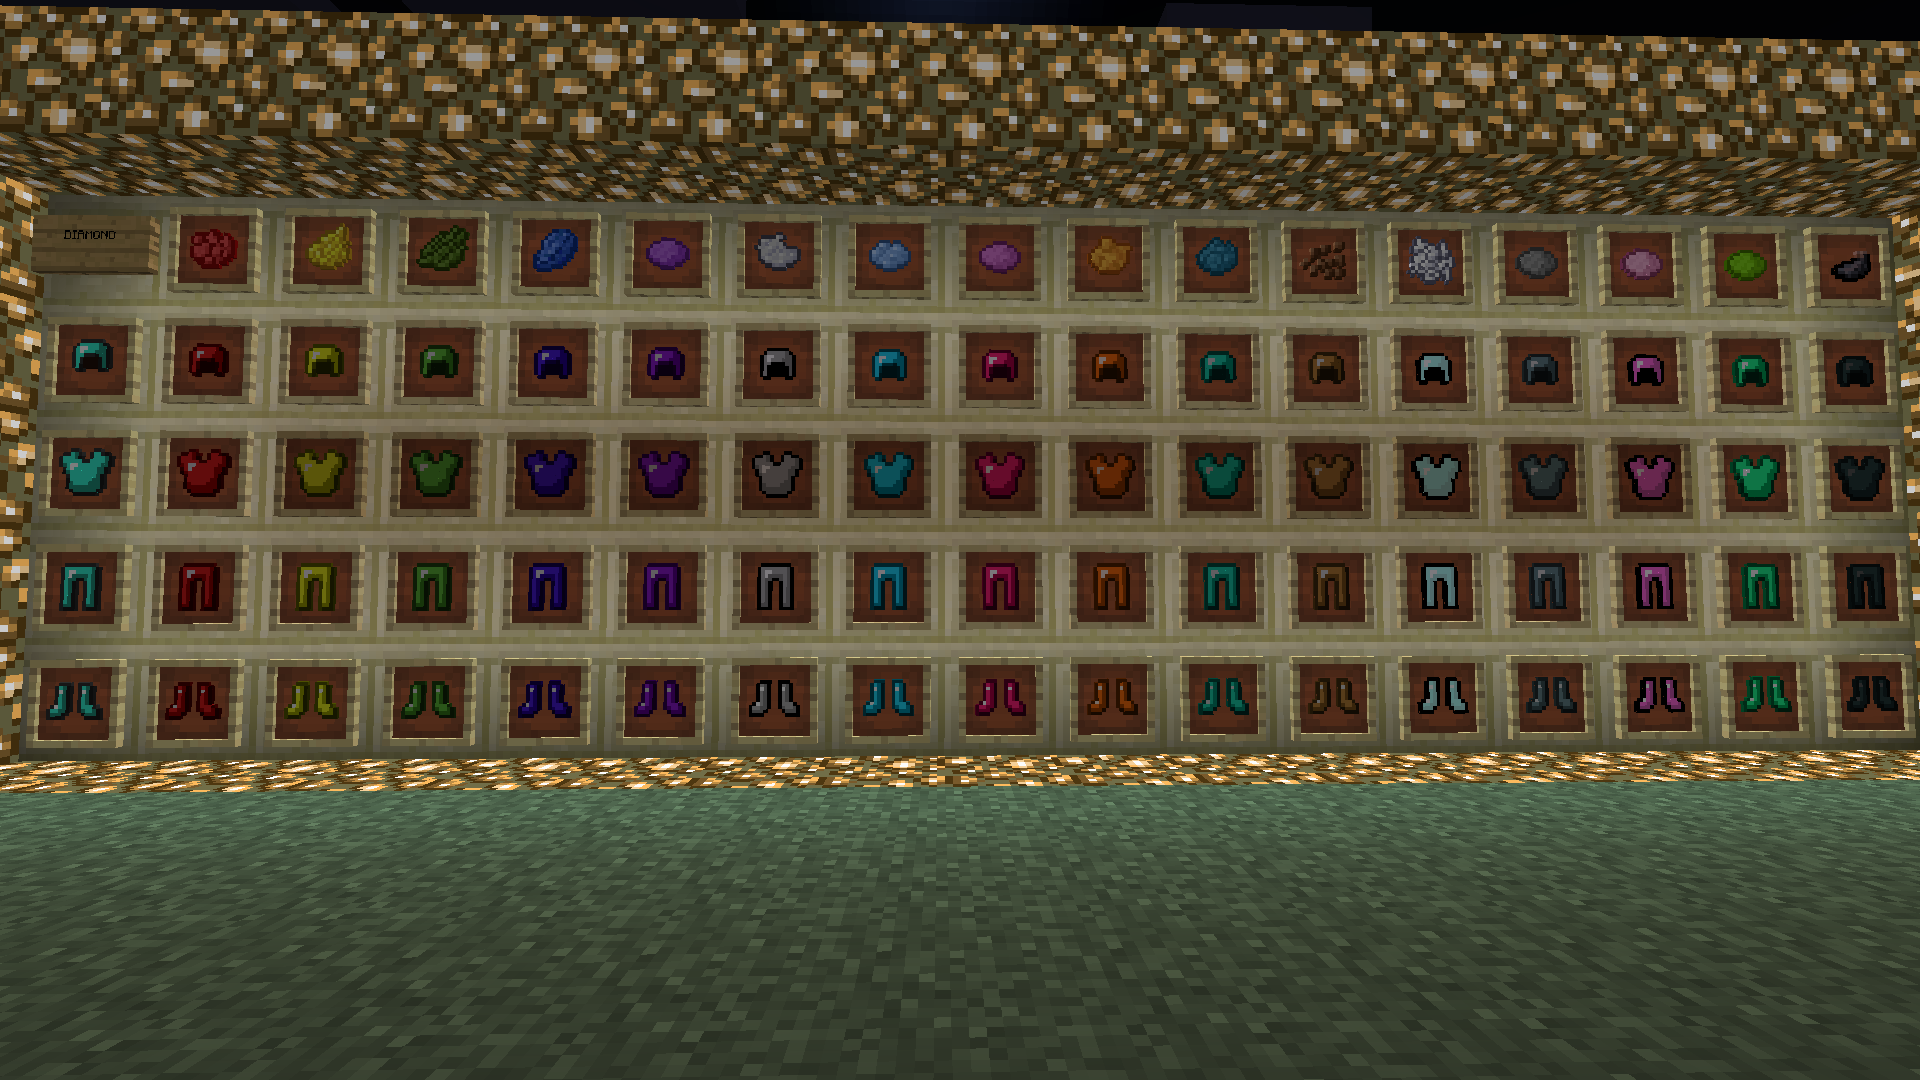 http://minecraft-forum.net/wp-content/uploads/2013/05/84dd6__Colorful-Armor-Mod-4.png